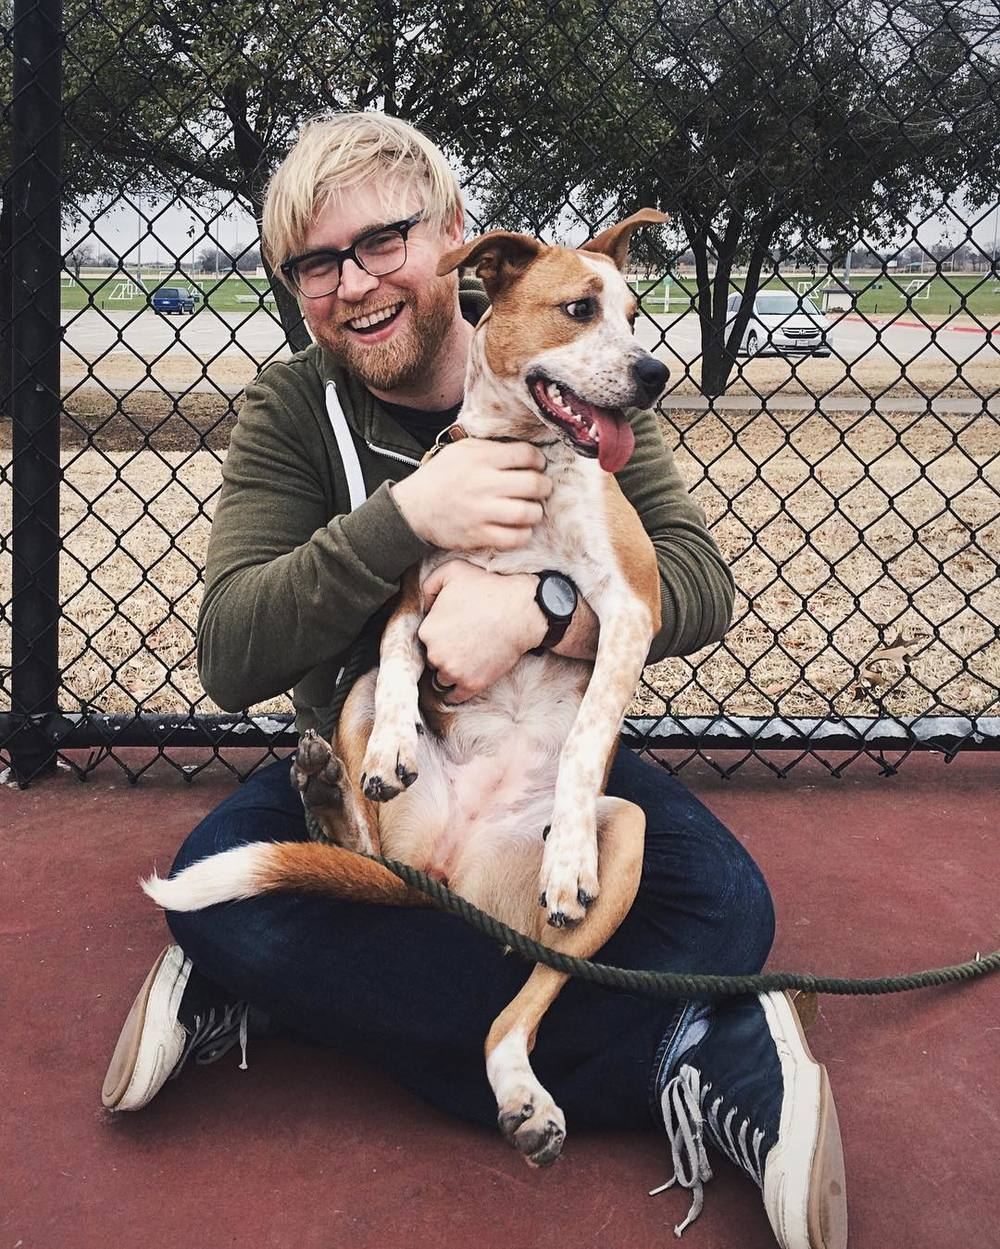 @__will with Deni from @DentonAnimals. You know you want a dog, too. Go adopt one. Unless you're Nick Amendola in which case you're probably not allowed to adopt an animal.